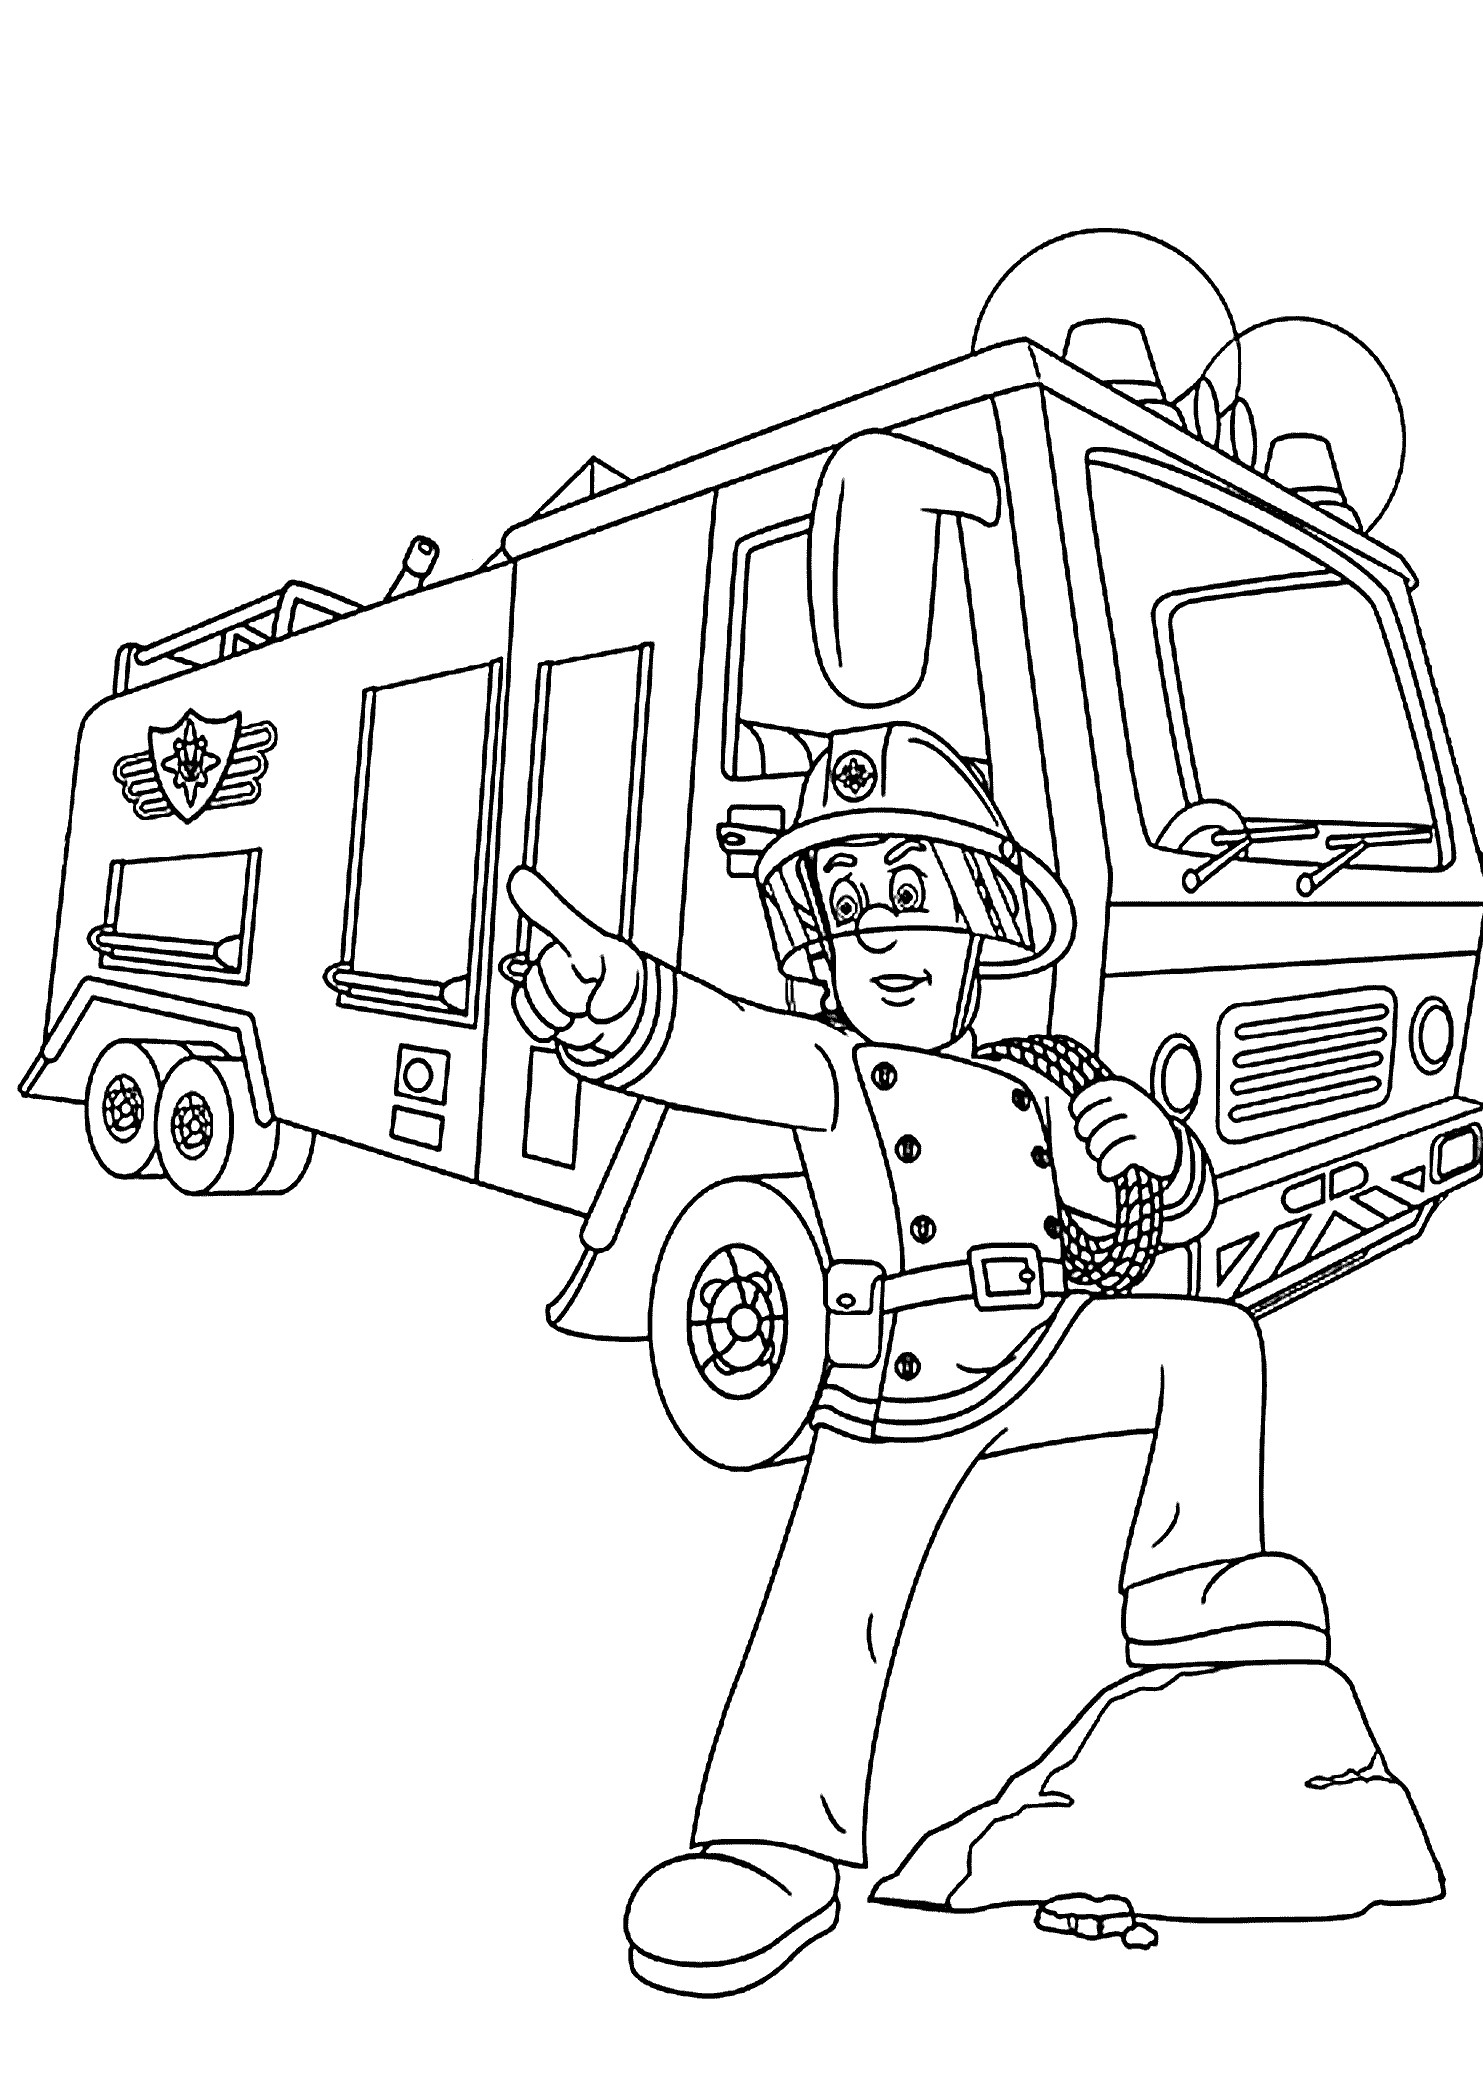 fire truck coloring sheets free fire truck coloring pages coloring home fire truck coloring sheets